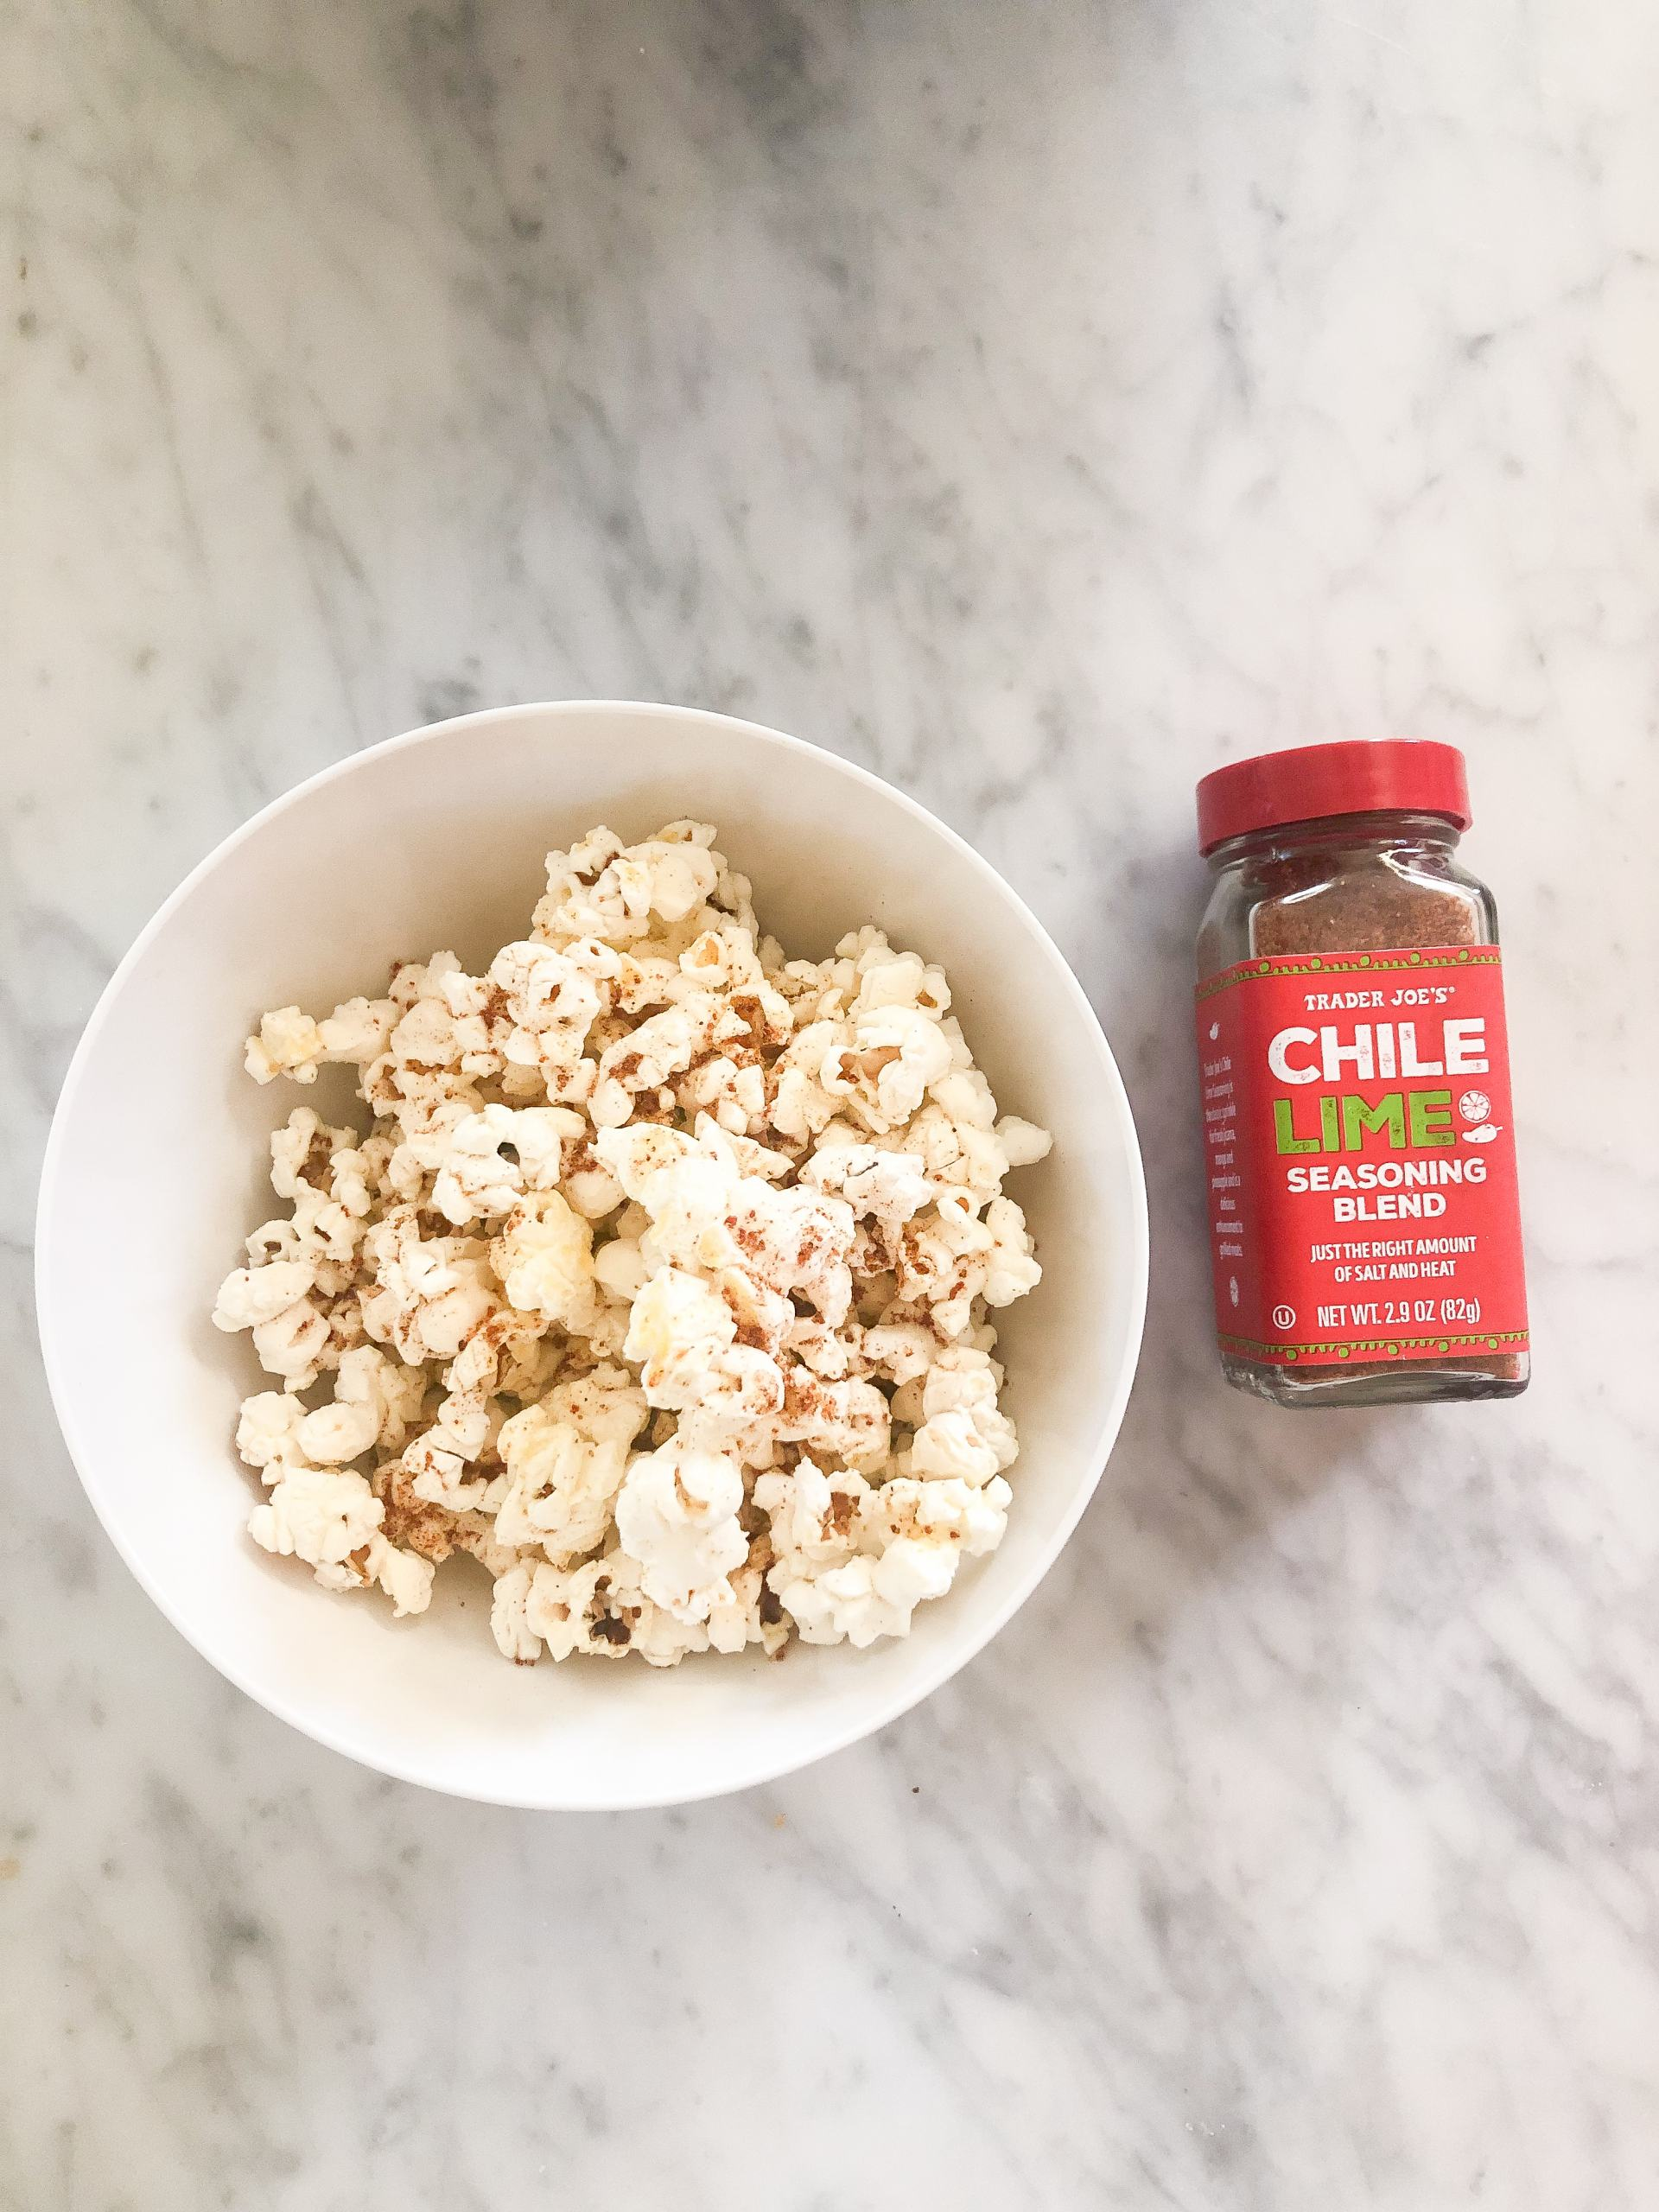 healthy snacks - healthy snack ideas - homemade popcorn with seasoning - good snack ideas - filling snacks - snacks with protein